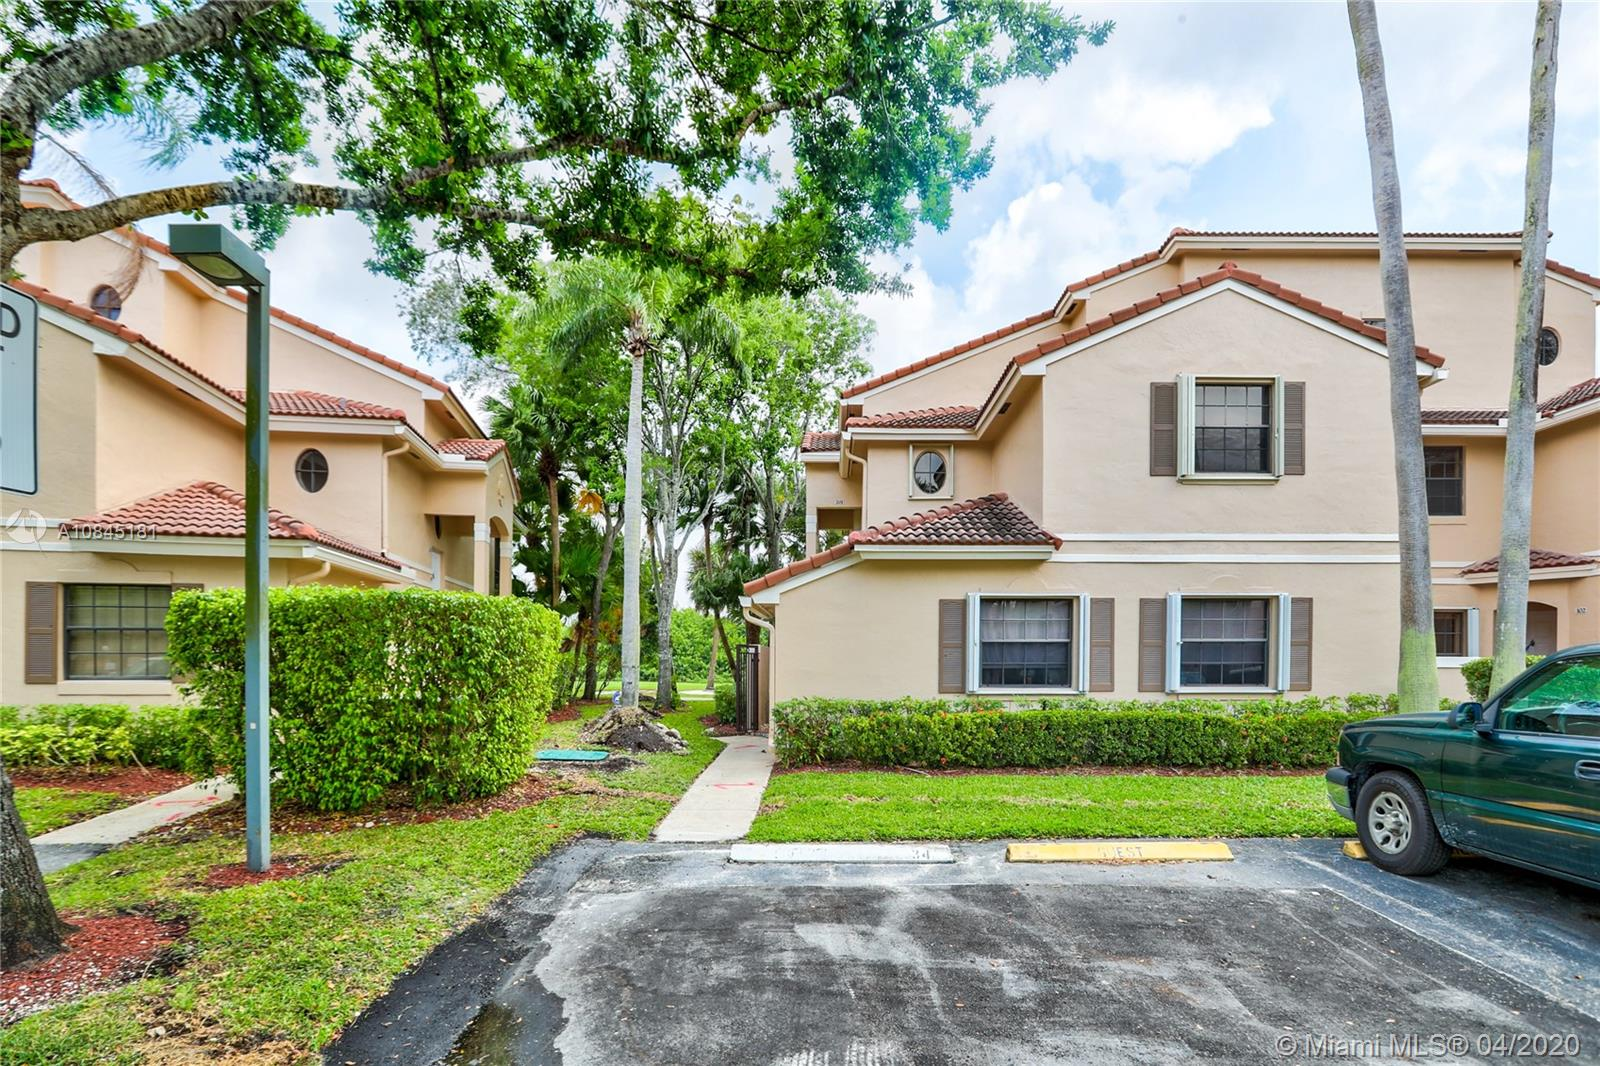 INCREDIBLE OPPORTUNITY TO PURCHASE RARELY AVAILABLE 3 BED/2 BATH CORNER UNIT WITH GOLF COURSE VIEW IN GRAND PALMS GUARD-GATED COMMUNITY! ENJOY THE BEST GOLF VIEW IN LAS VERDES FROM YOUR PRIVATE BALCONY! OPEN FLOOR PLAN PERFECT FOR ENTERTAINING FRIENDS AND FAMILY! UPGRADED GRANITE COUNTERS THROUGHOUT KITCHEN! BOTH BATHROOMS ARE COMPLETELY REMODELED WITH PORCELAIN TILE! MASTER BATHROOM INCLUDES DOUBLE VANITIES, ROMAN TUB AND GORGEOUS OPEN SHOWER! TANKLESS WATER HEATER, NEWER A/C AND ACCORDION SHUTTERS THROUGHOUT! BEST LOCATION IN PEMBROKE PINES, MINUTES AWAY FROM WHOLE FOODS AND THE SHOPS AT PEMBROKE GARDENS! ALL A-RATED SCHOOLS AND EASY ACCESS TO I-75!